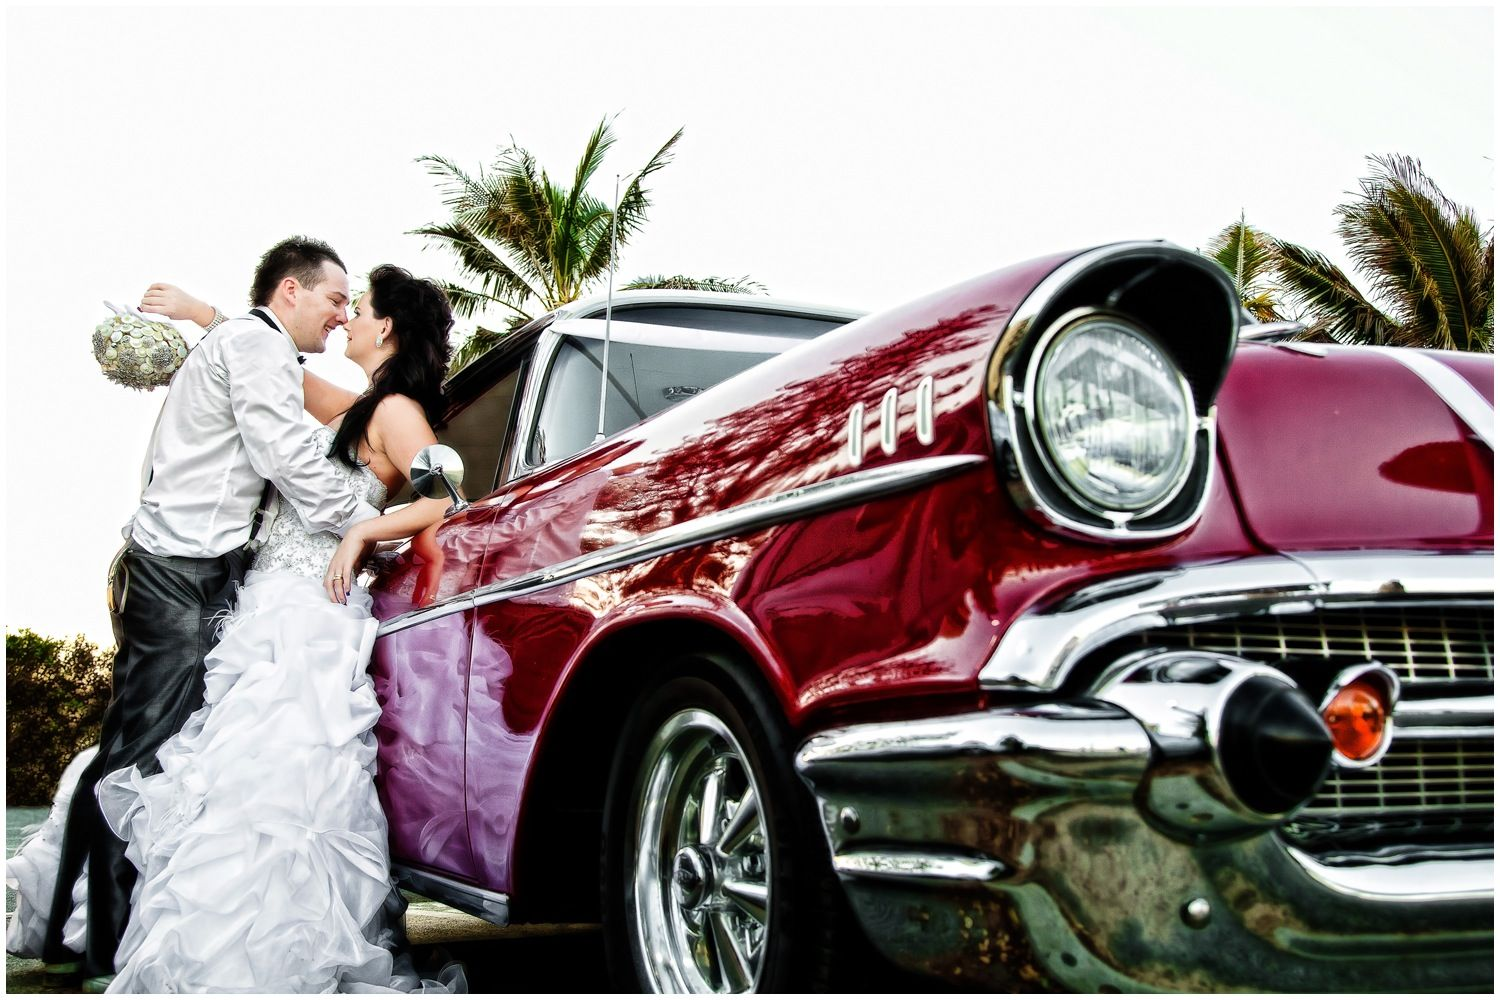 Stunning wedding car this is a muscle car taken at a ...